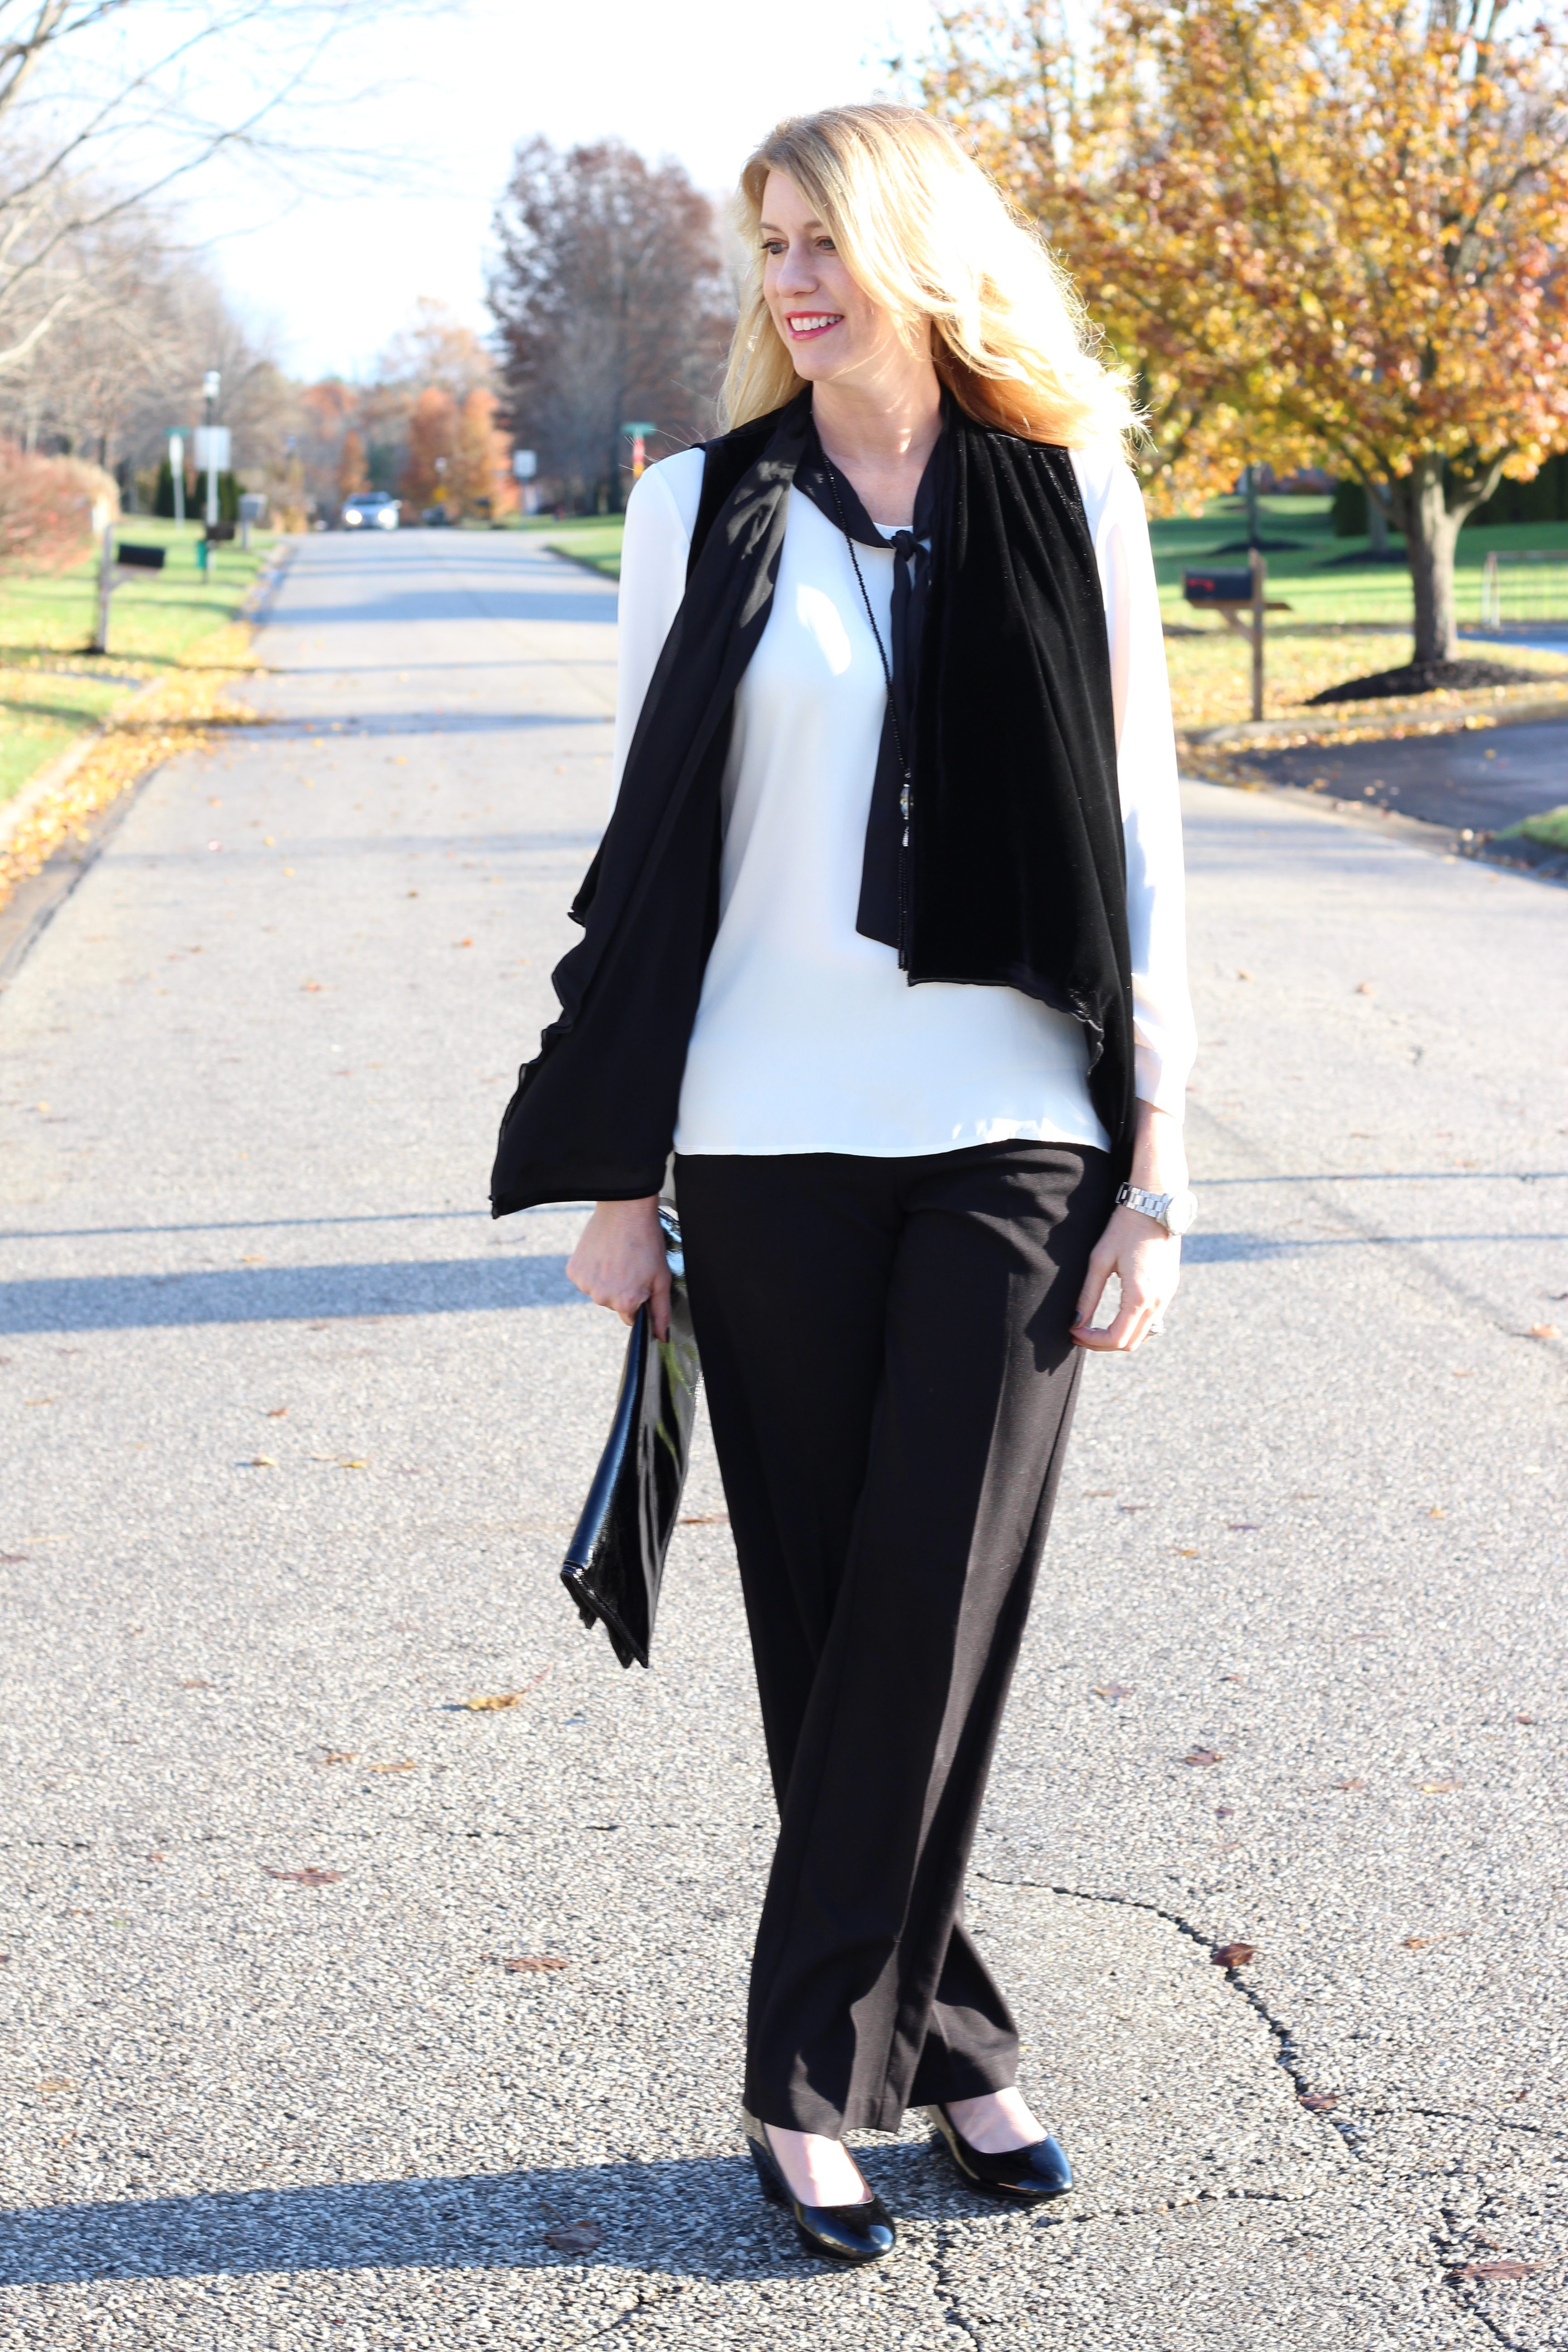 Christopher and Banks- style- women's fashion- fall and winter fashion- holiday outfits- velour vest- black and white- menswear inspired look- Christmas party attire